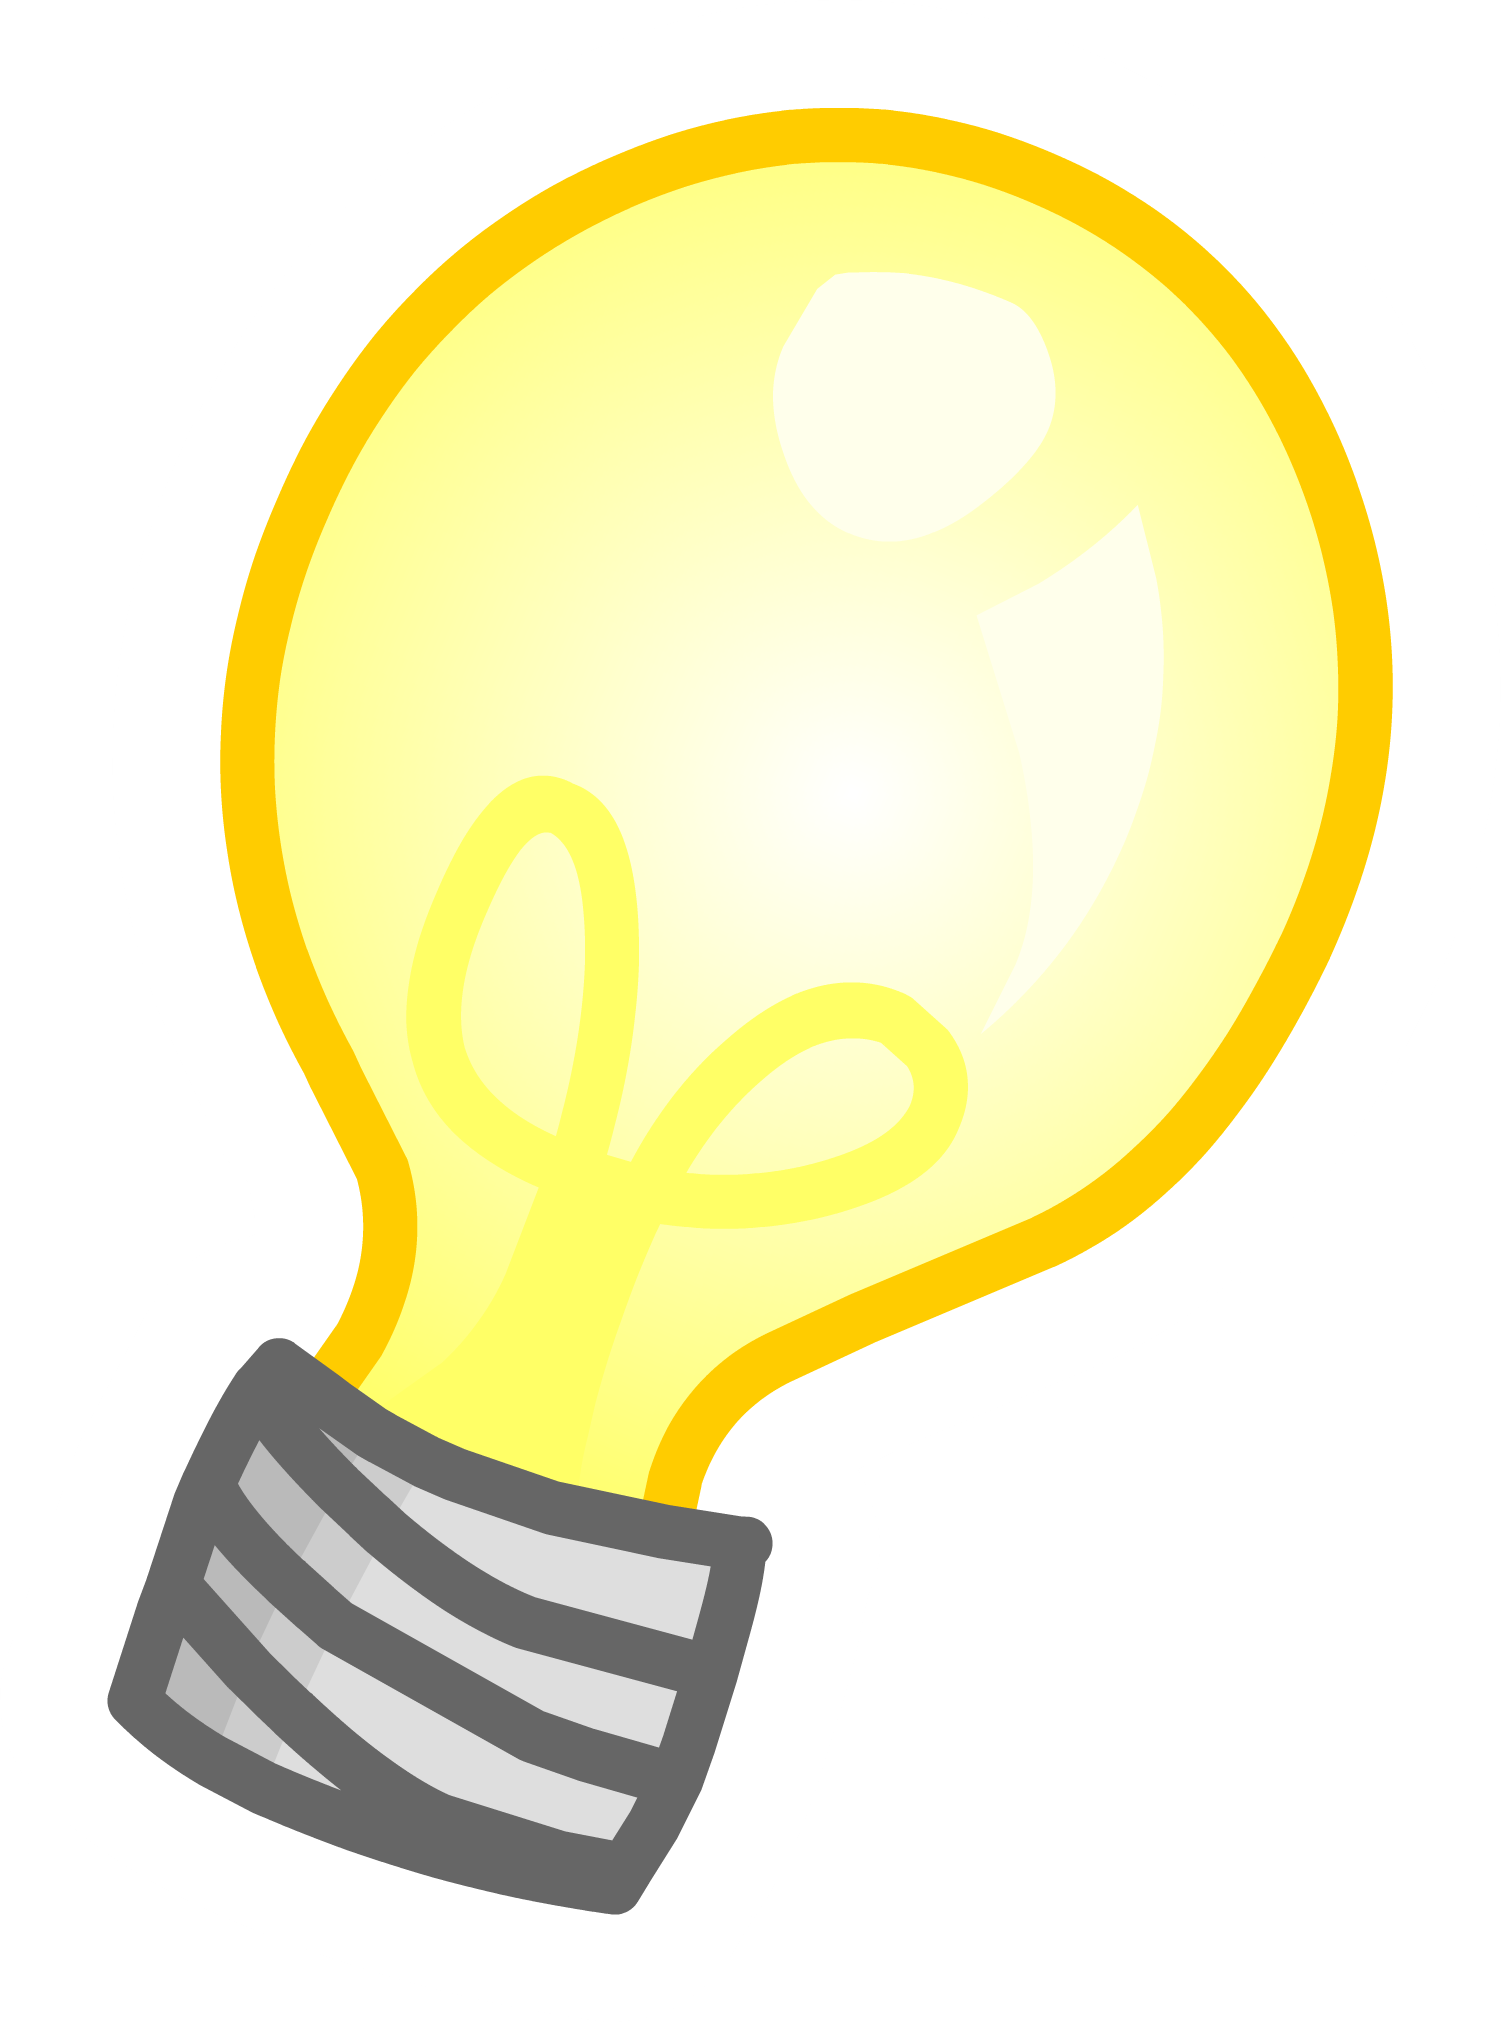 Image  Light Bulb Pin.PNG  Club Penguin Wiki  The free, editable